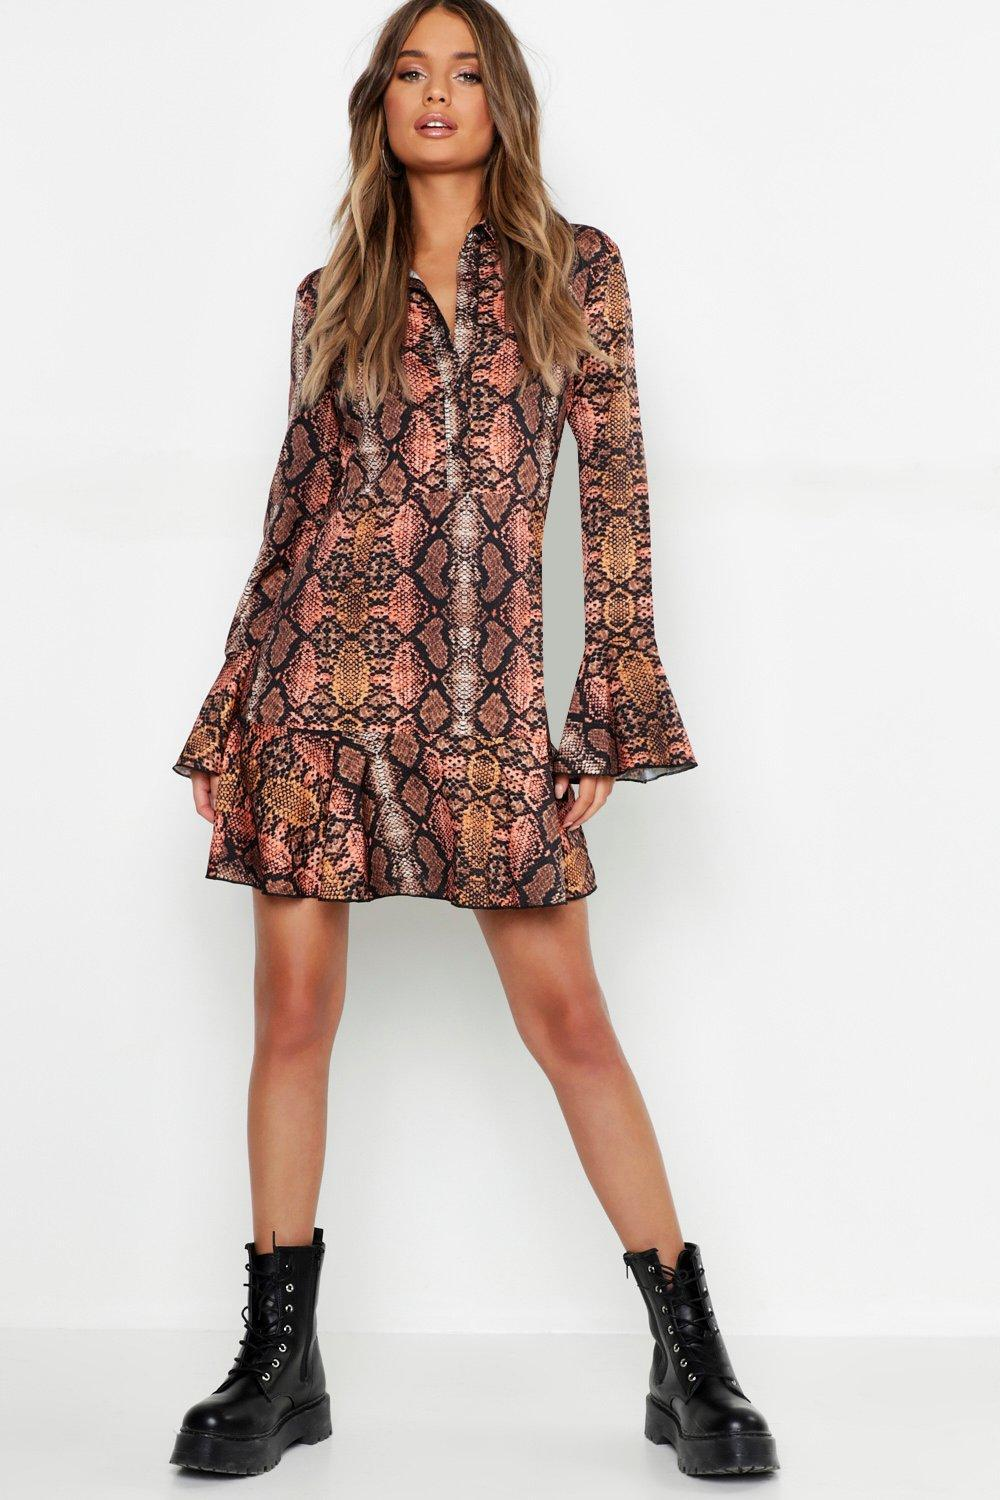 c96a8ccb5f12b Lyst - Boohoo Snake Print Ruffle Hem Shirt Dress in Brown